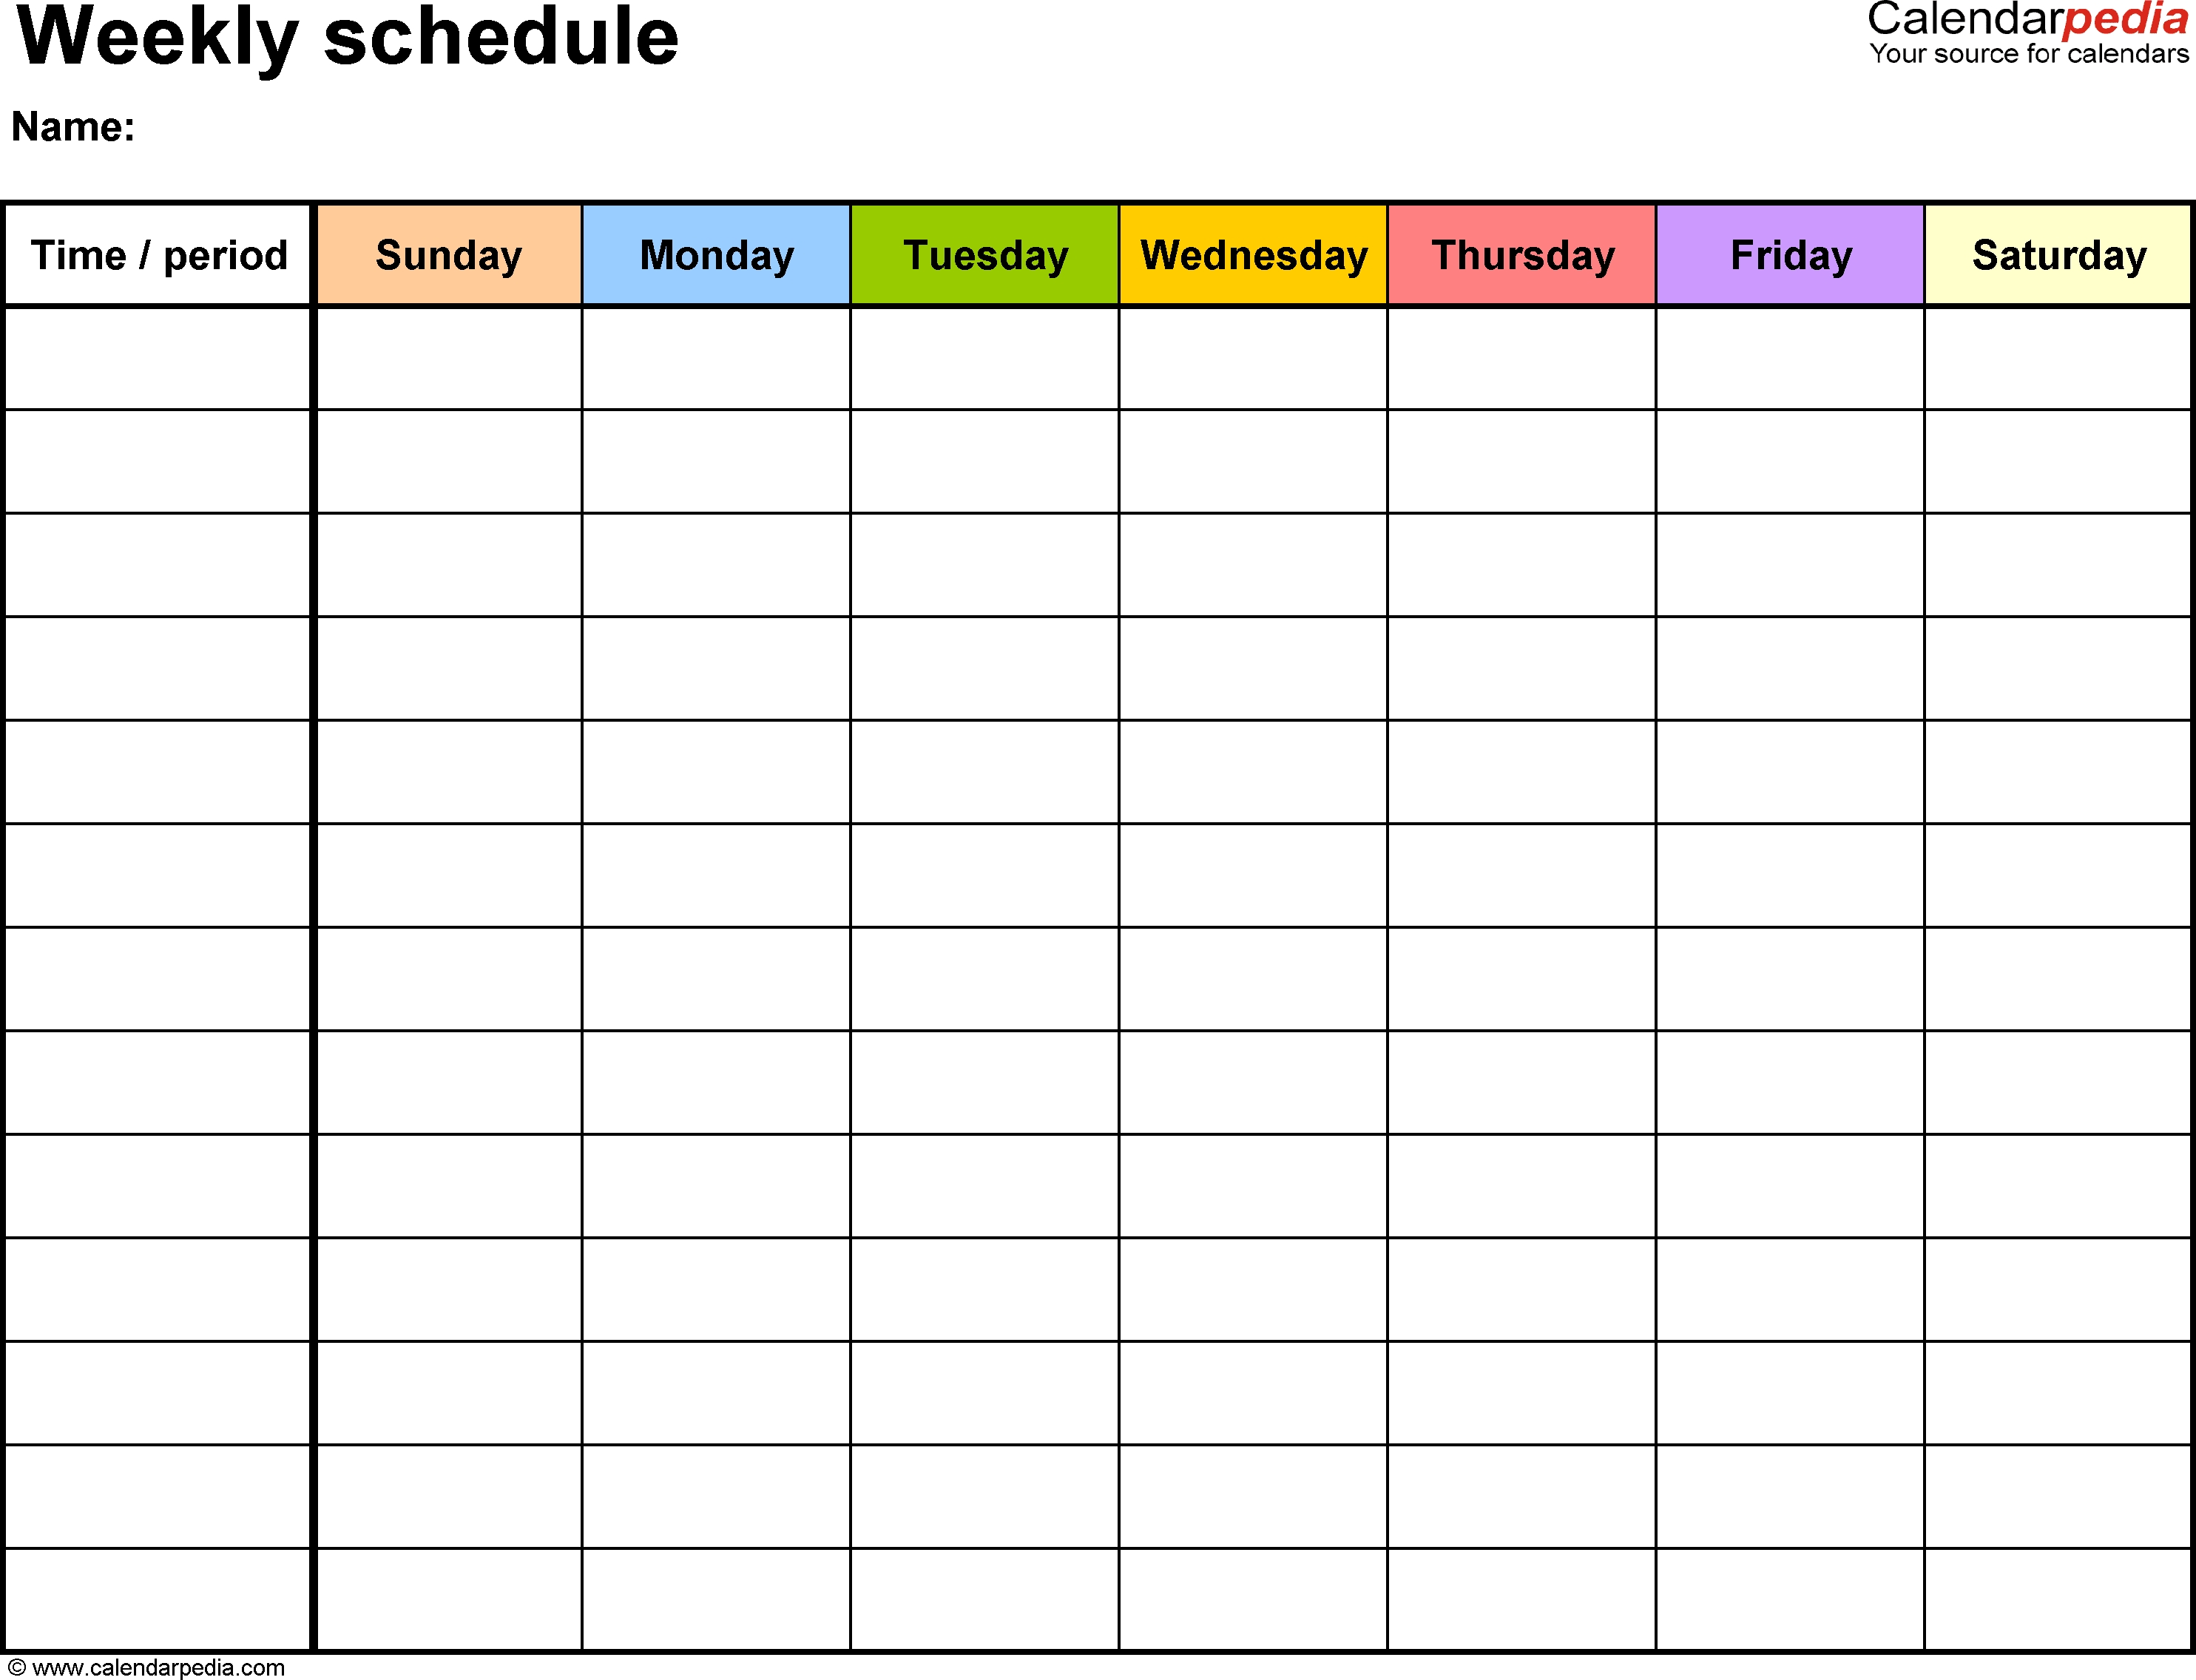 Free Weekly Schedule Templates For Pdf - 18 Templates regarding Two-Week Calendar Template Word Printable